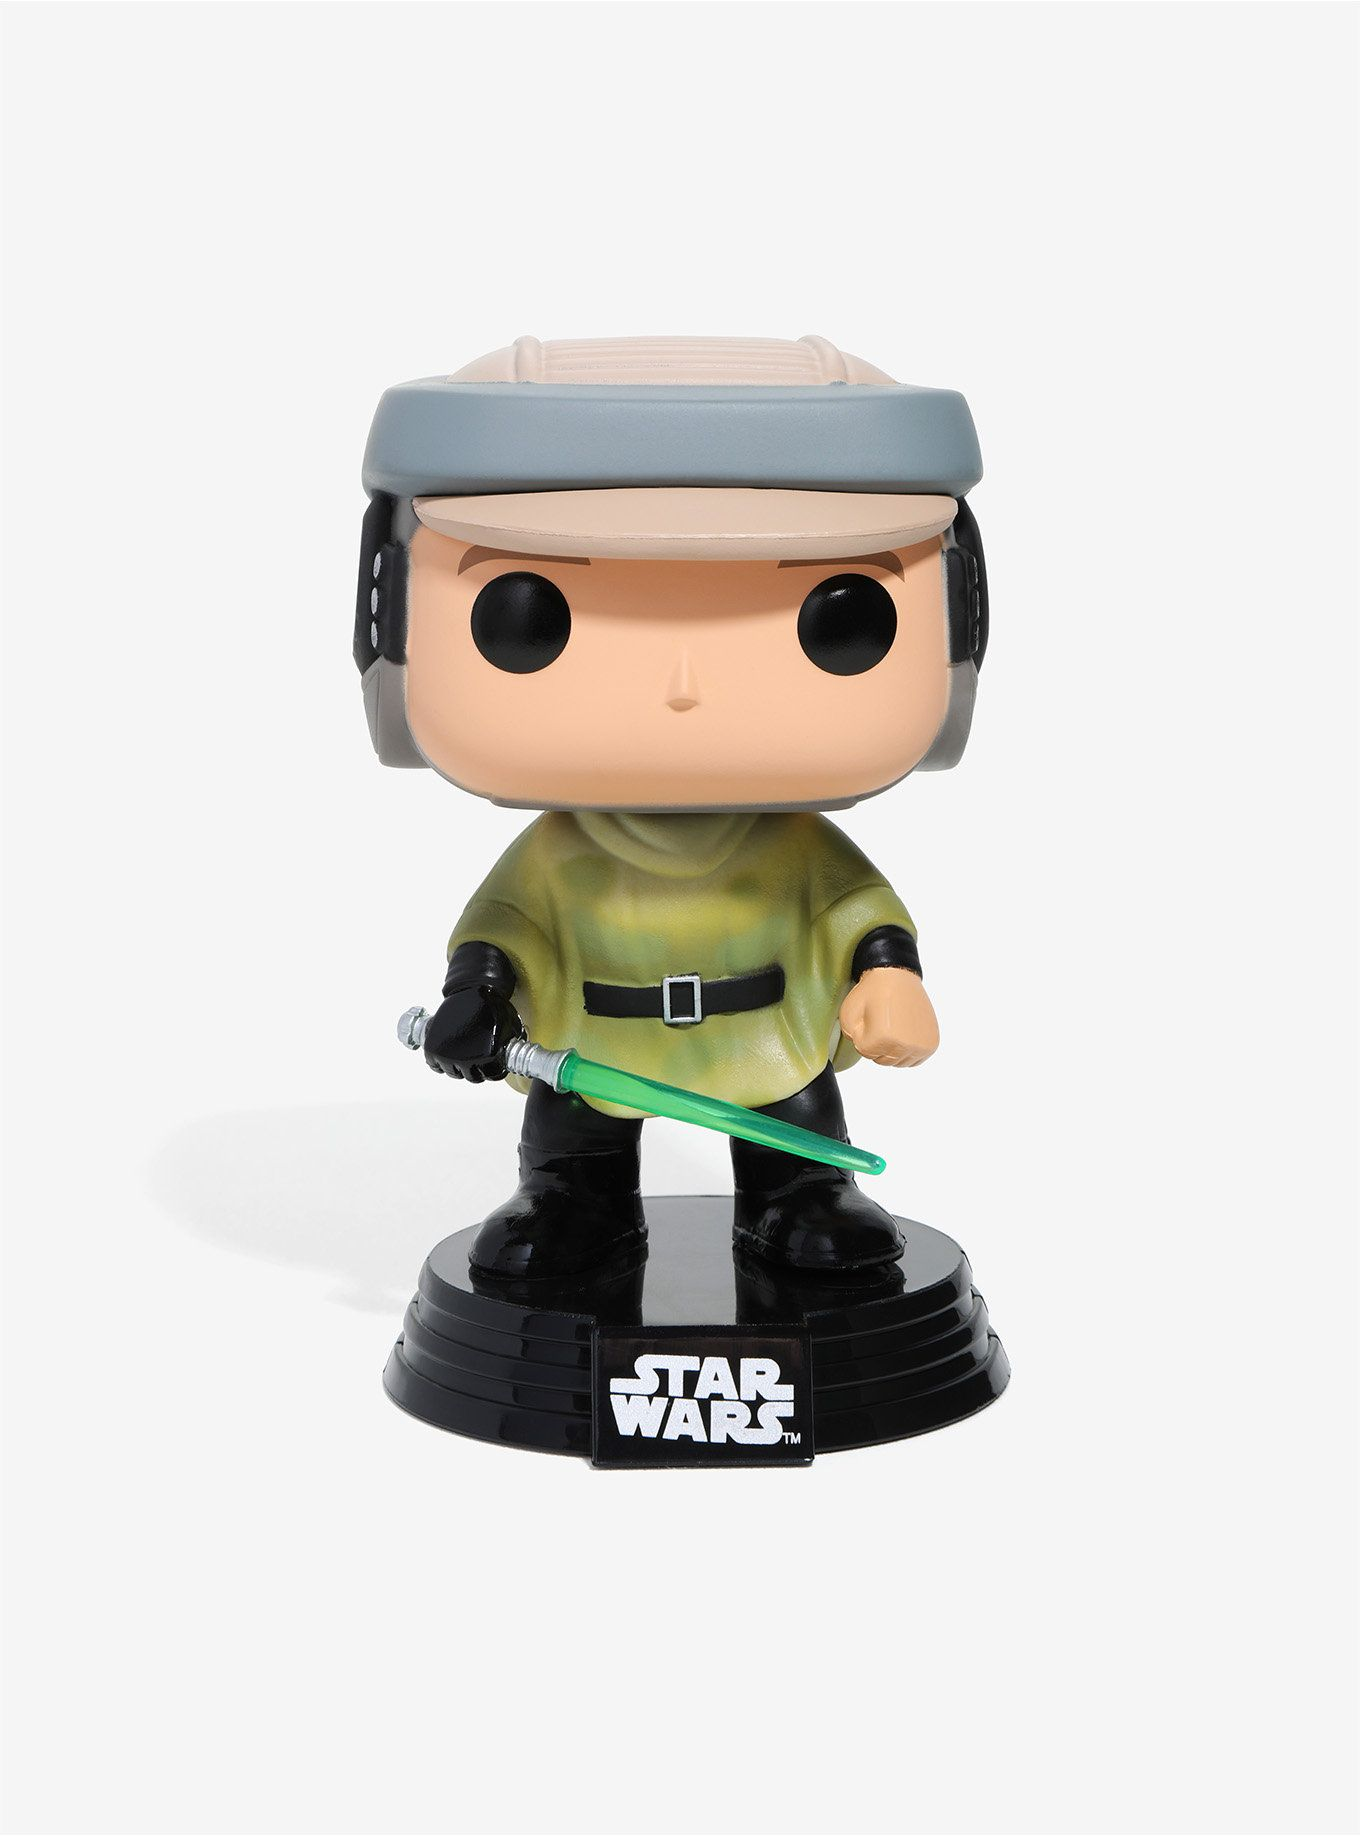 Star Wars House Items Funko Pop Star Wars Luke Skywalker Endor Vinyl Bobble Head